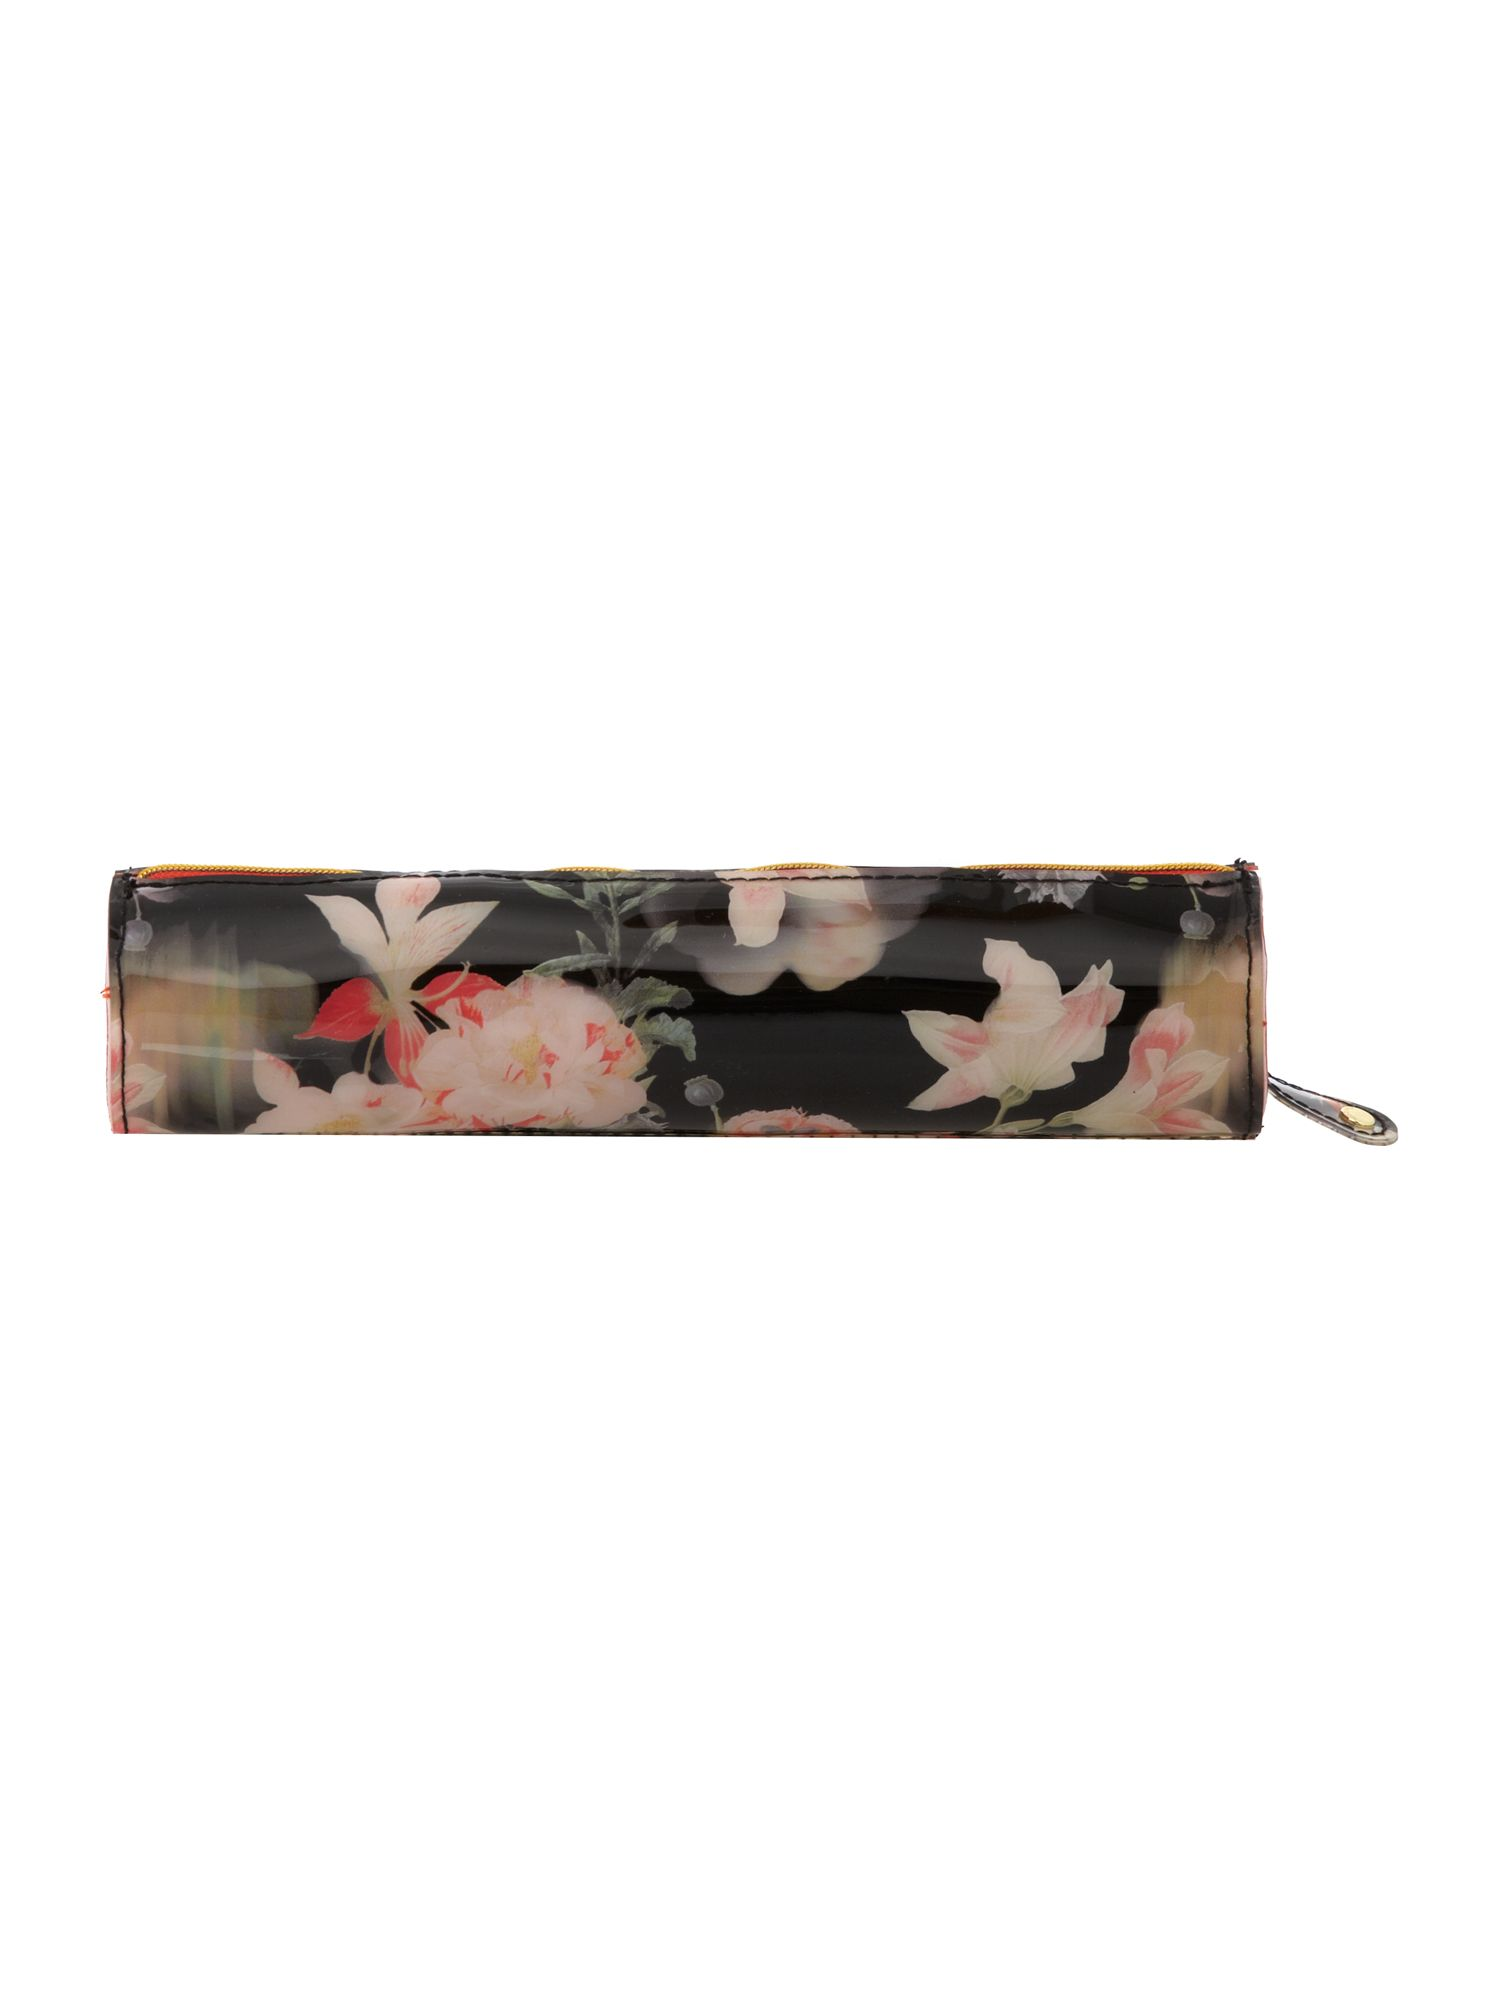 Black floral print pencil case